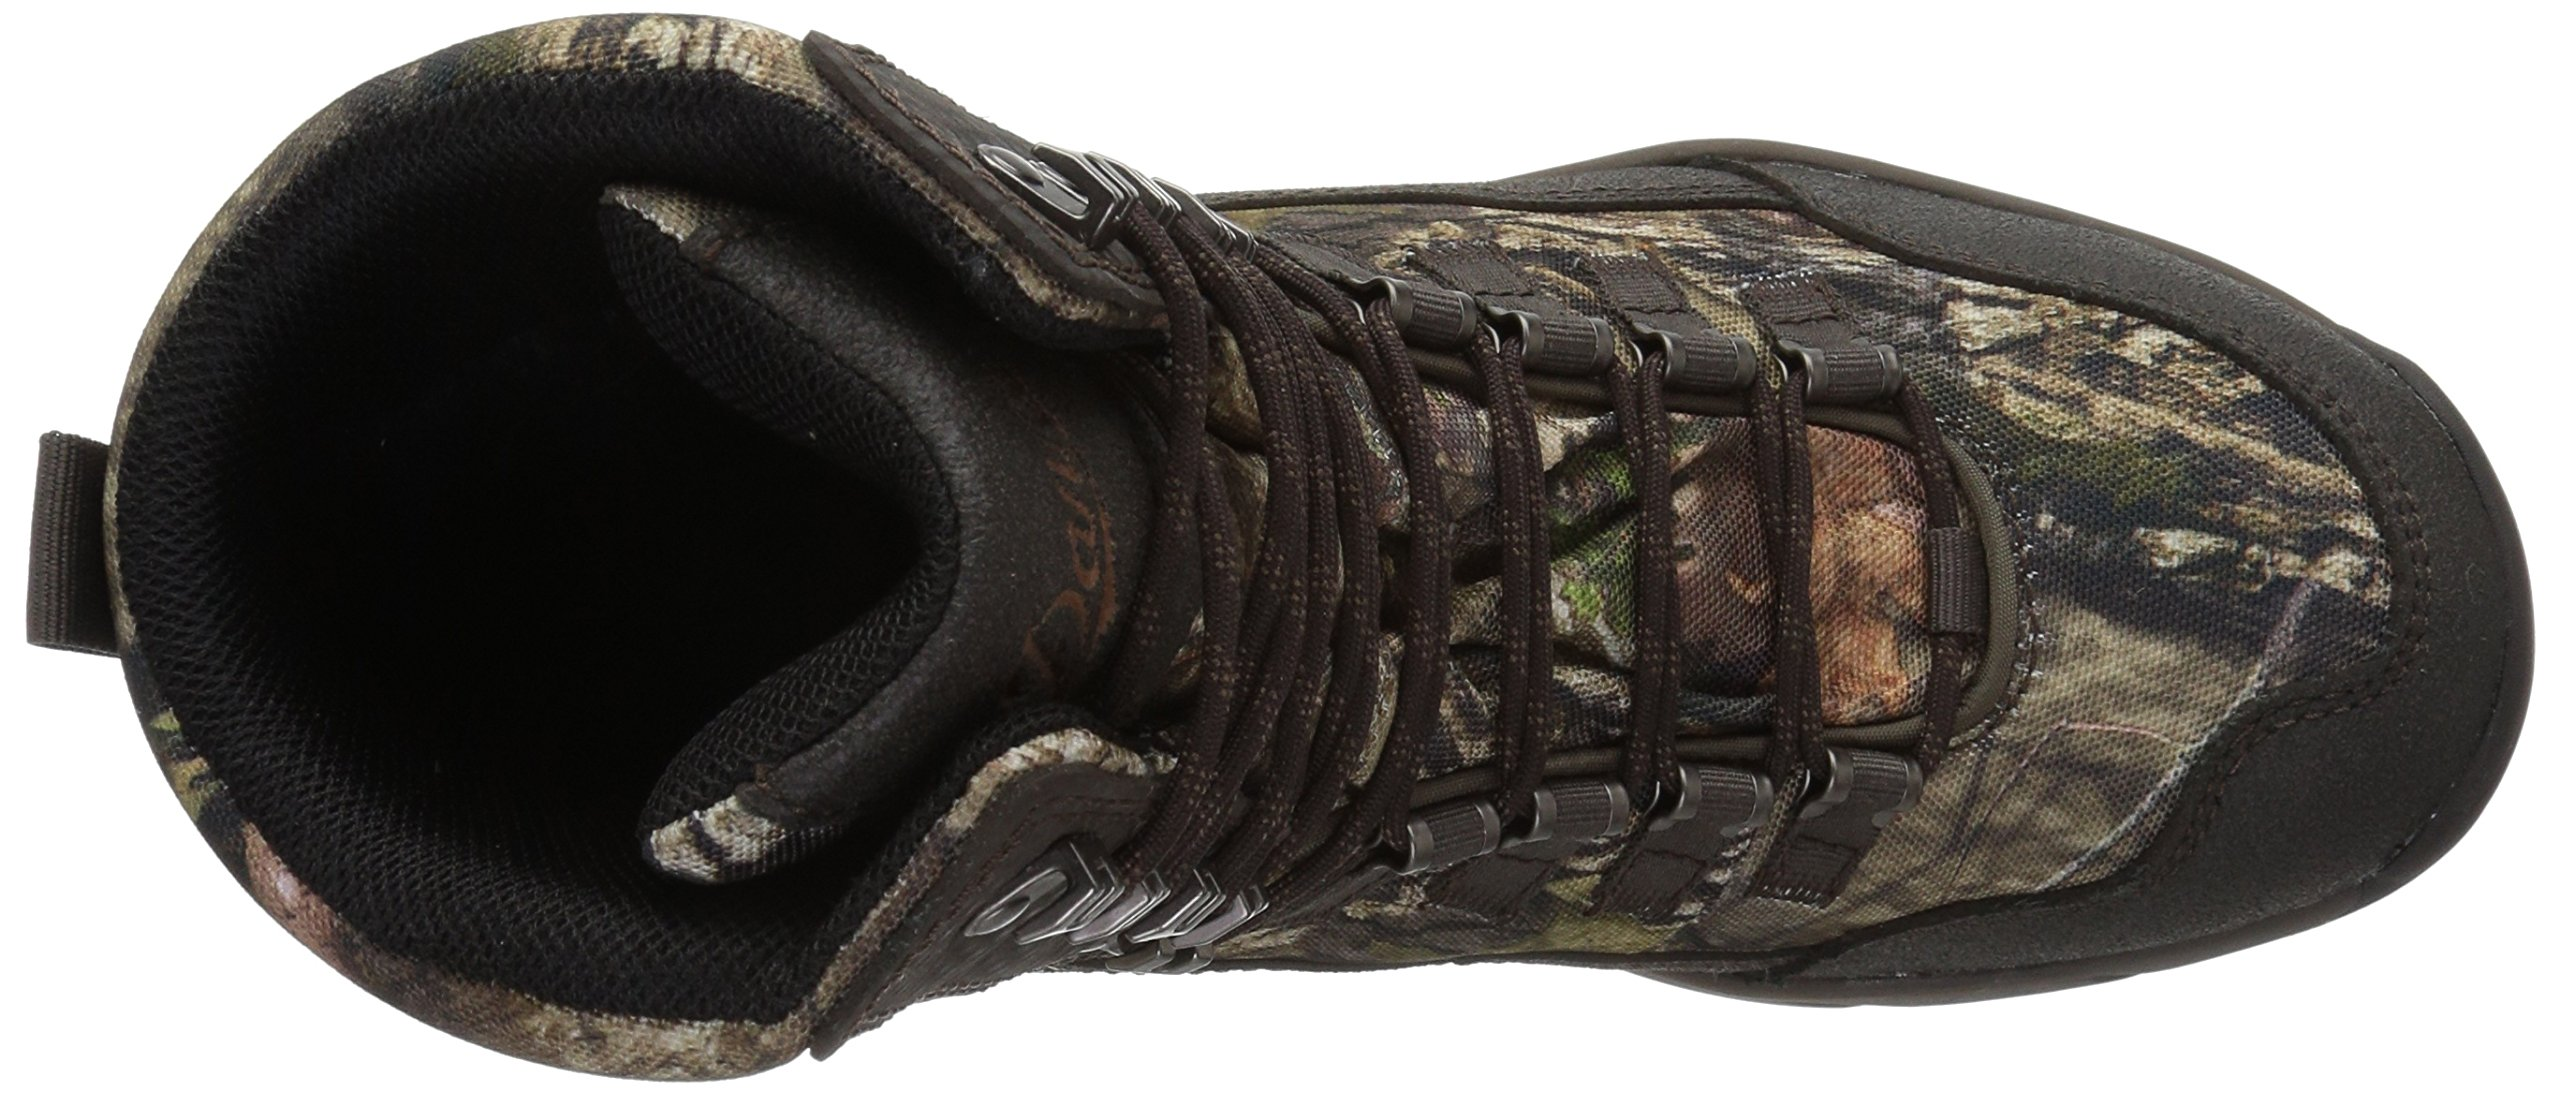 Danner Men's Vital Insulated 400G Hunting Shoes, Mossy Oak Break Up Country, 8.5 D US by Danner (Image #8)